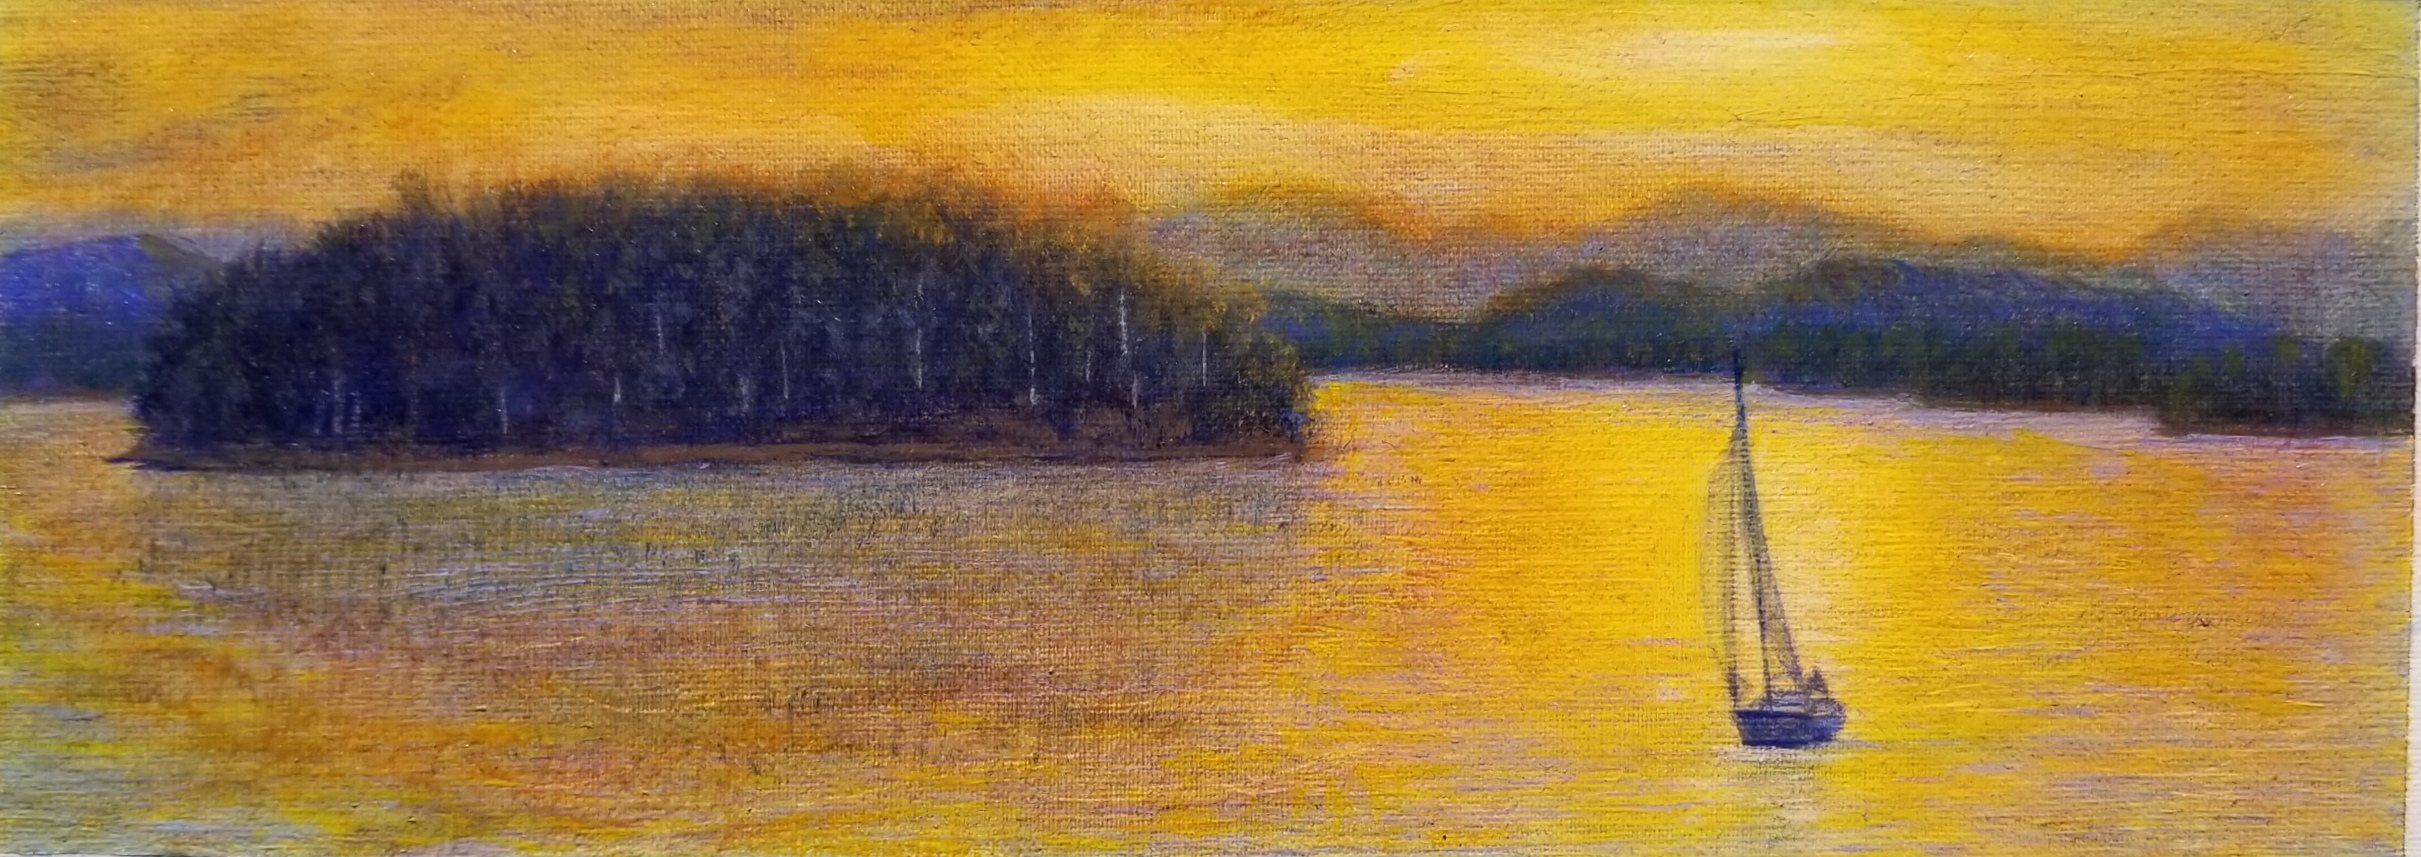 Lake Keowee, Nancy Oppenheimer.   Chosen for a 14ft mural at the Greenville/Spartanburg Airport